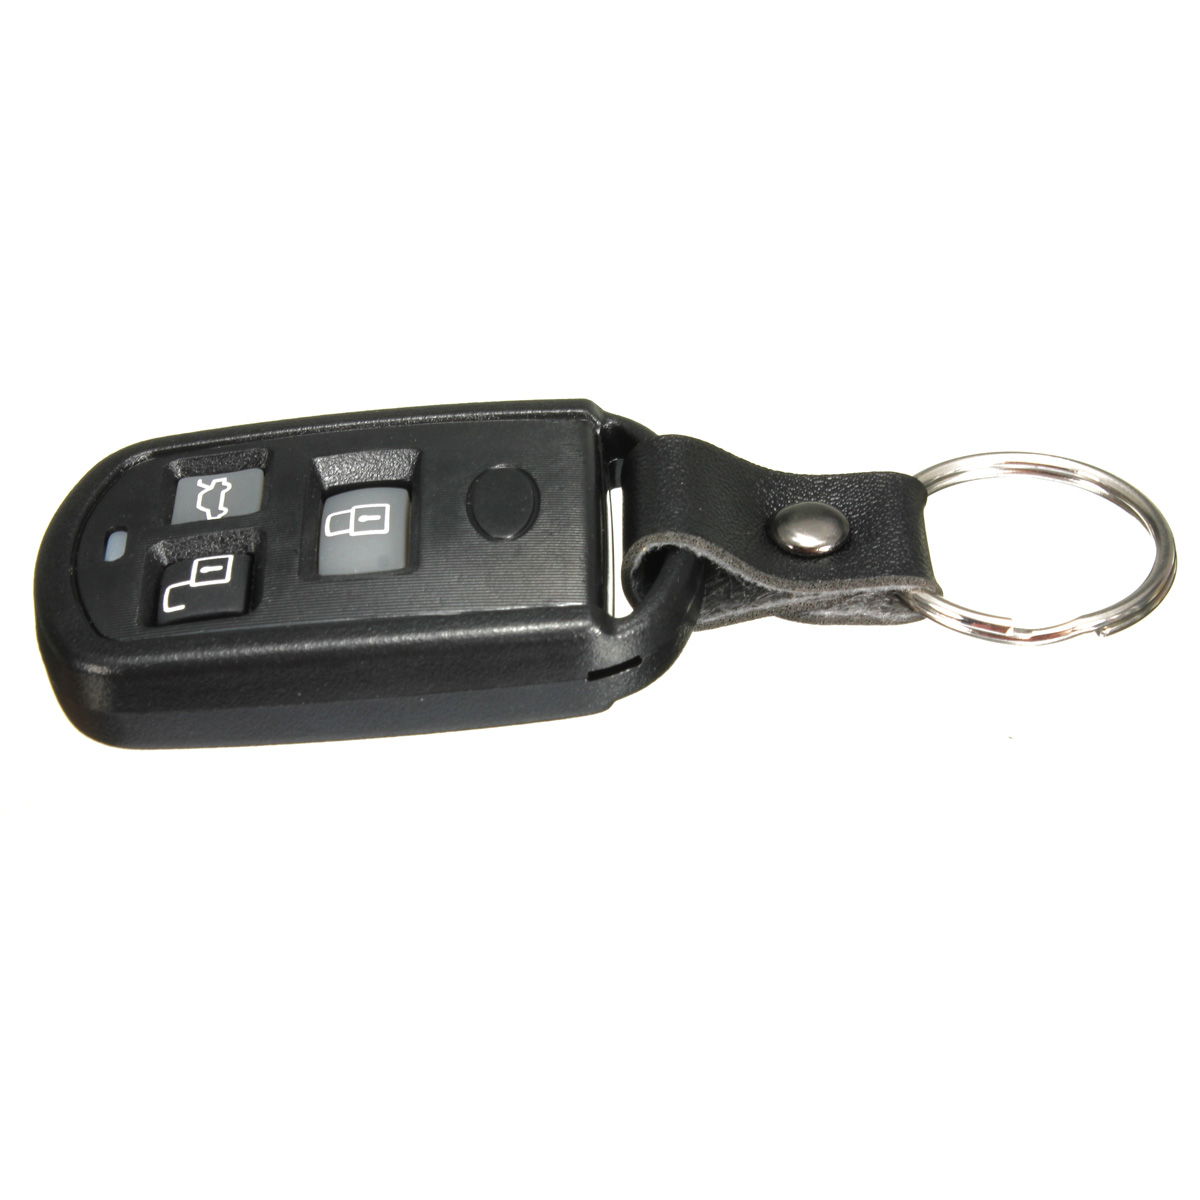 Hyundai Sonata Key Replacement: 3 Button Remote Key Fob Case Replacement For Hyundai